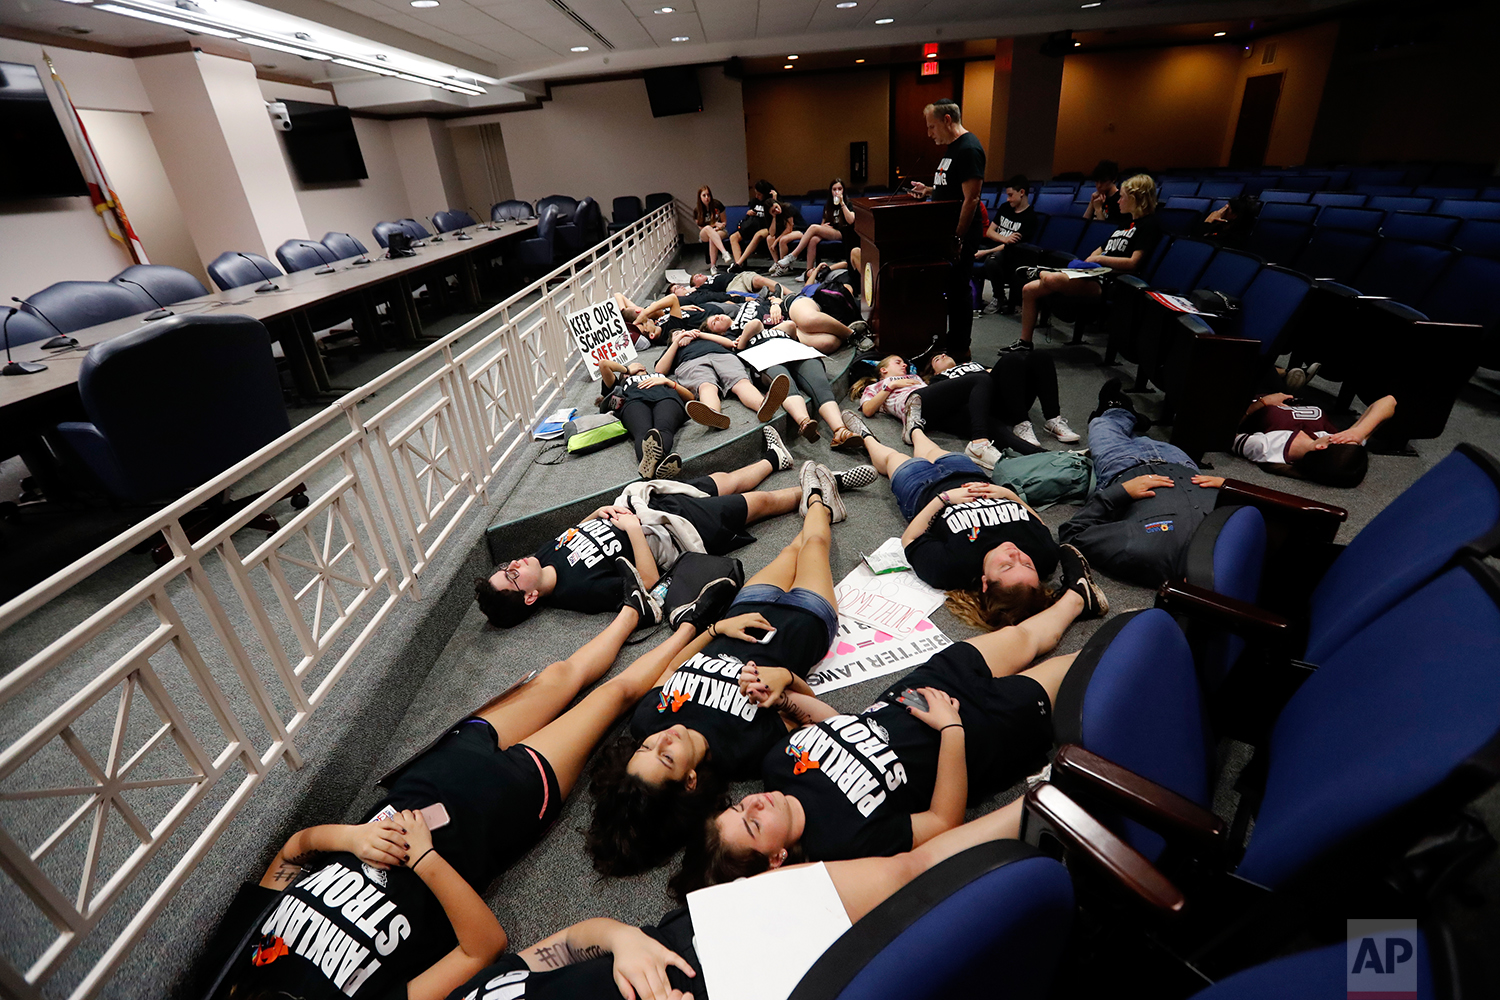 Seventeen student survivors from Marjory Stoneman Douglas High School lie down on the floor in silence and pray at the approximate time of the attack one week ago, inside the state capitol, in Tallahassee, Fla., Wednesday, Feb. 21, 2018. The students, members of the Congregation Kol Tikvah Temple, lost three students, and were at the capitol to pressure lawmakers on gun control reform. (AP Photo/Gerald Herbert)